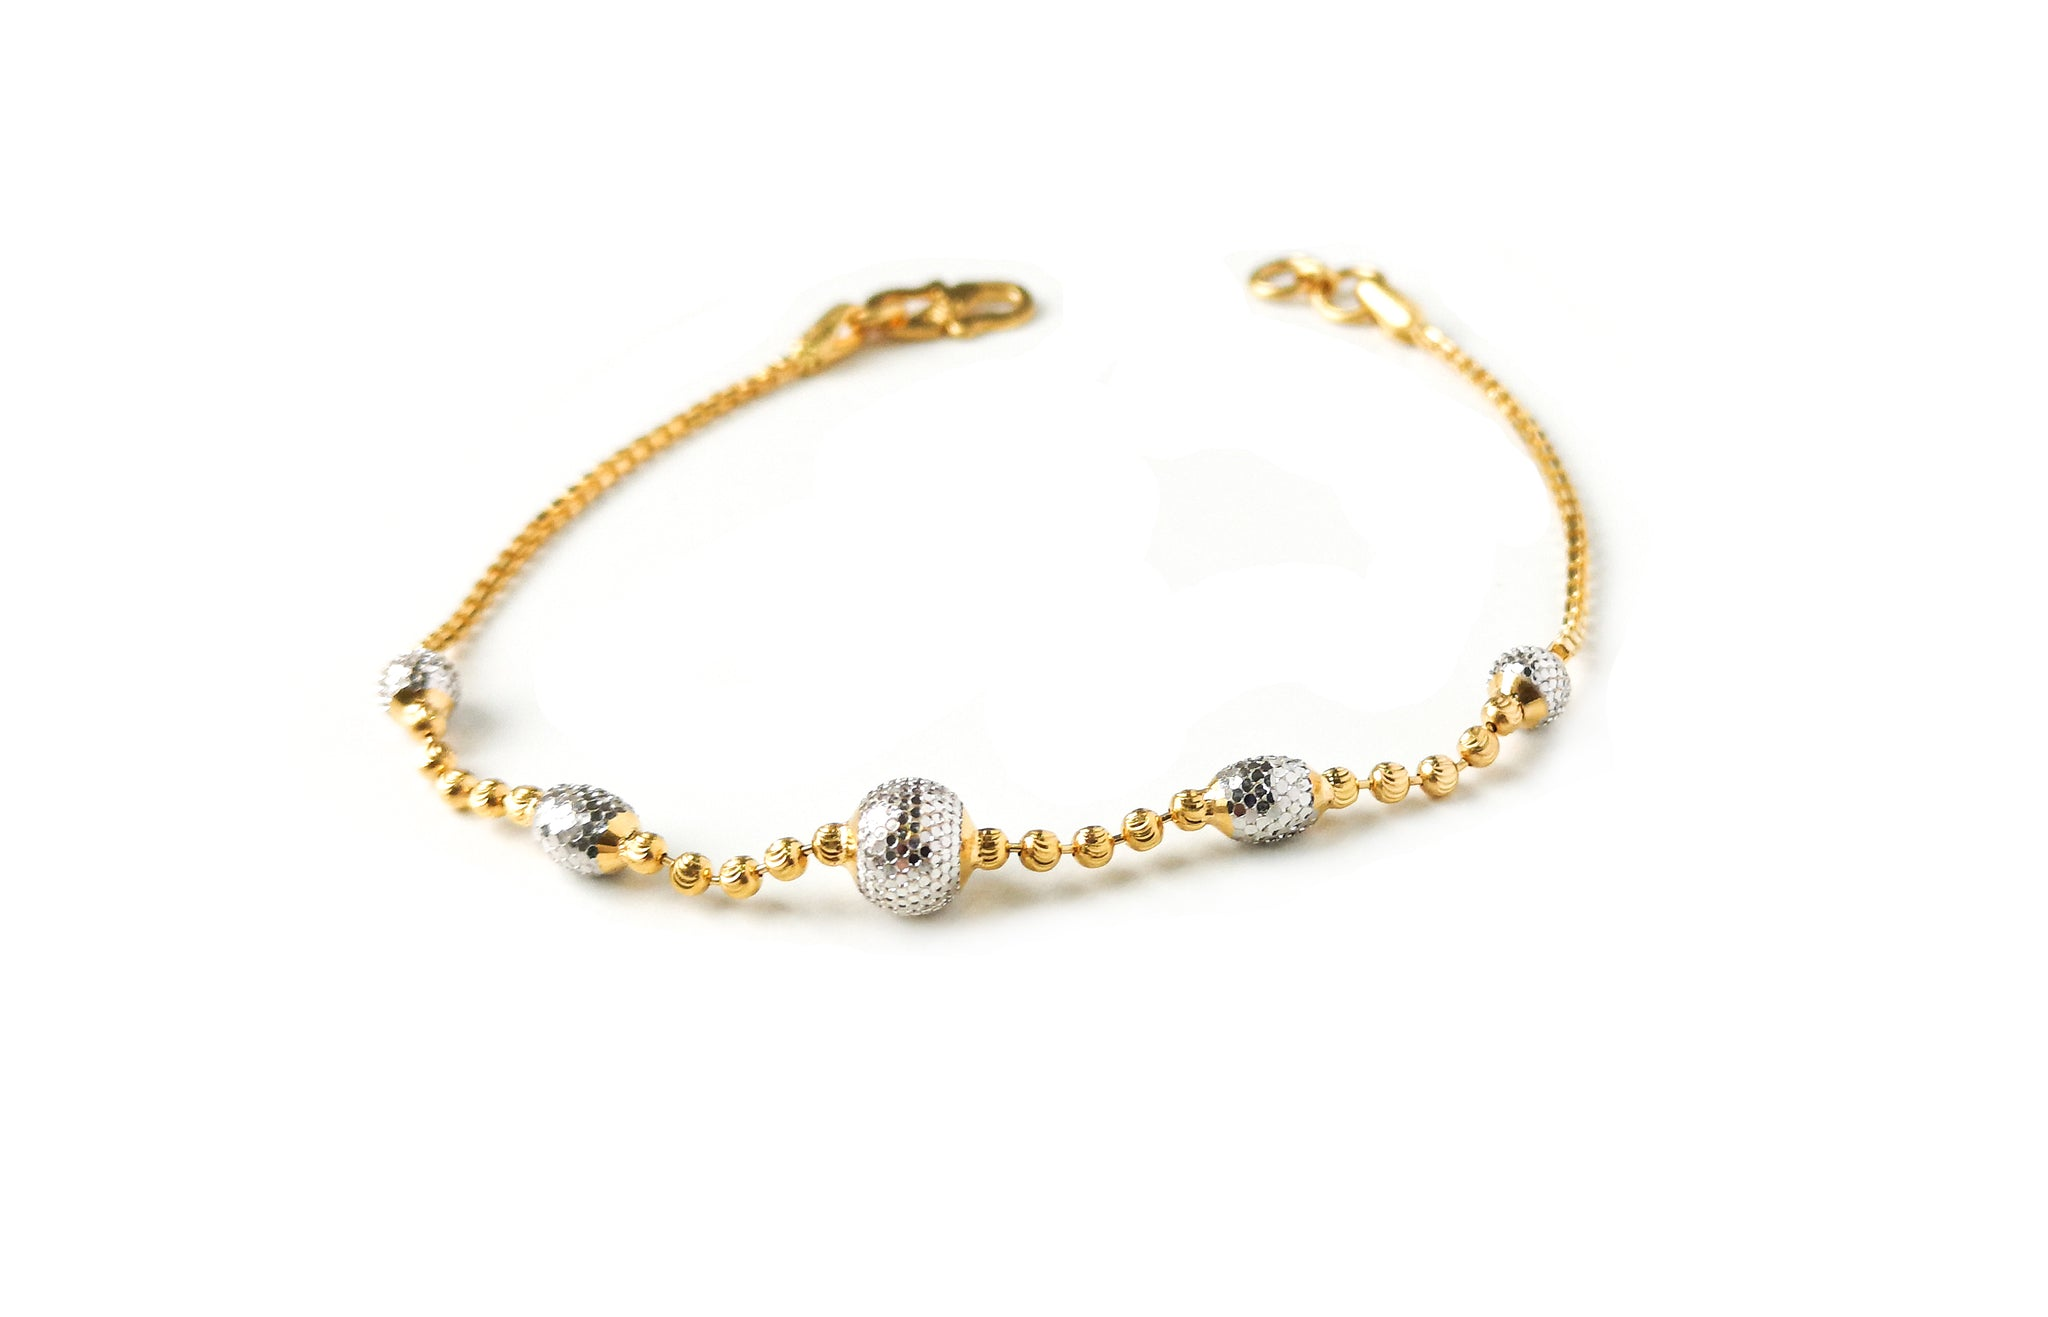 22ct Gold Bracelet with Diamond Cut and Rhodium Design (4.4g) LBR-7661